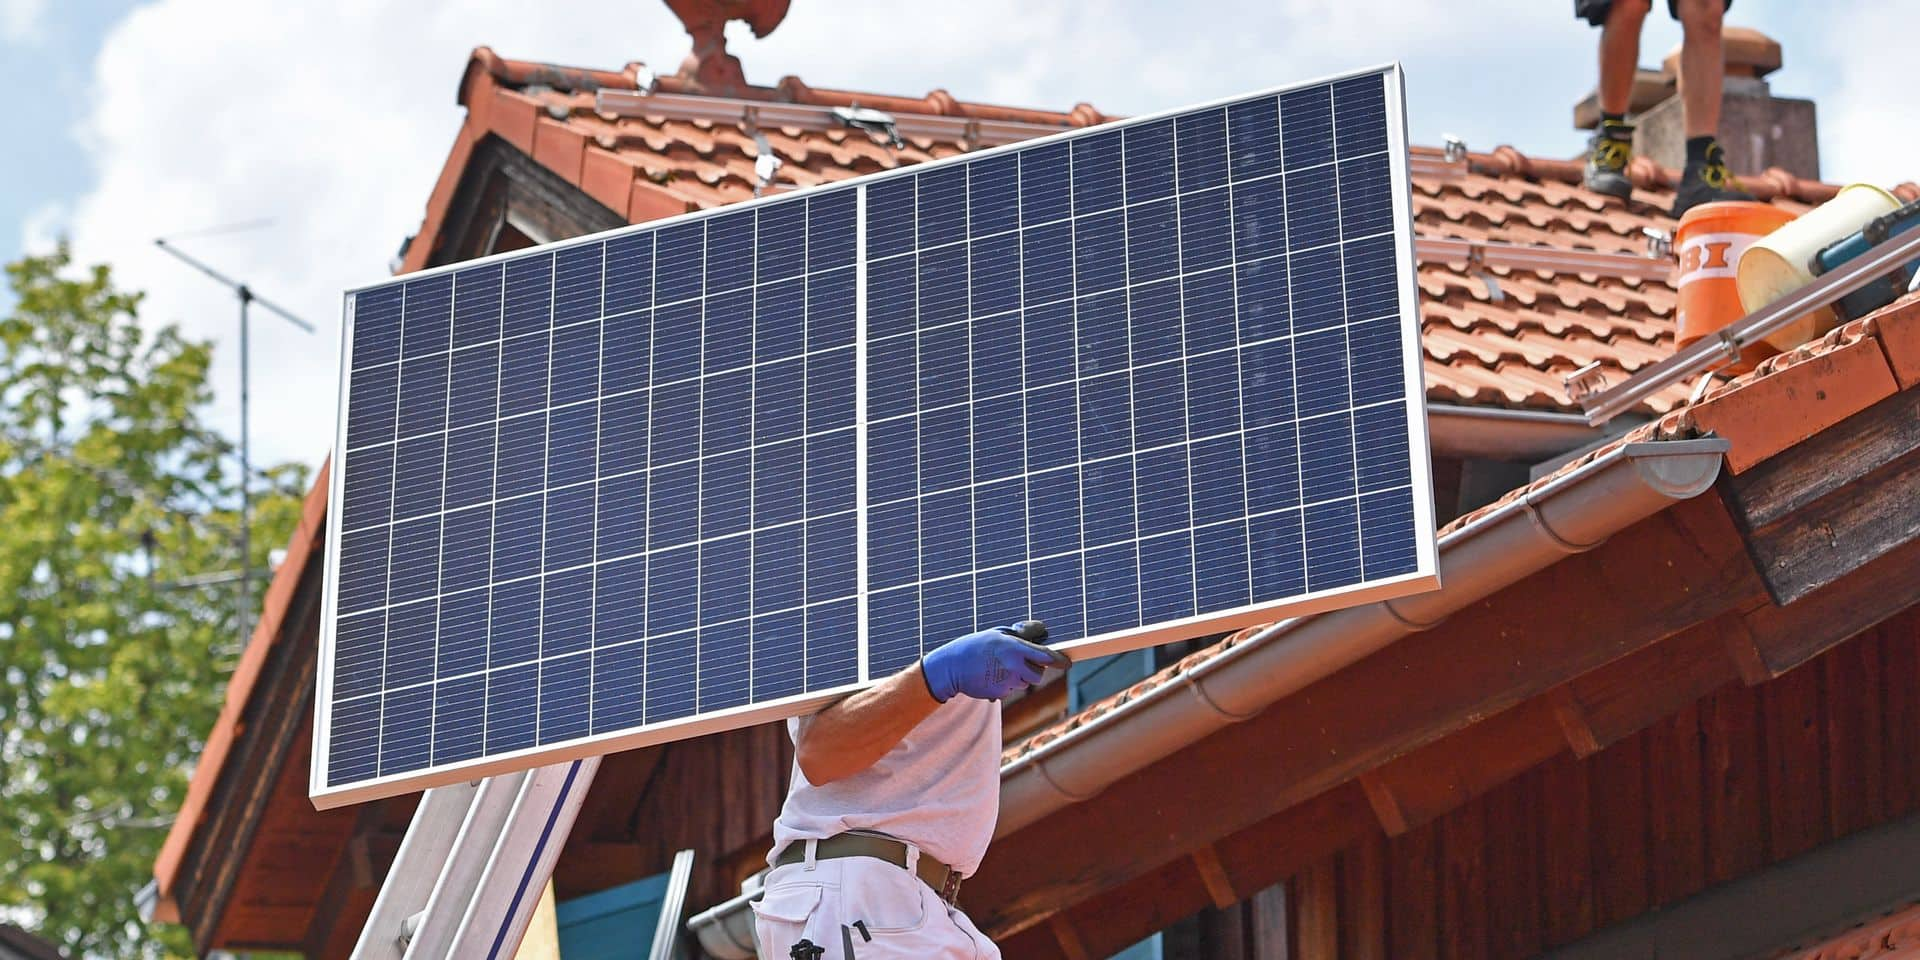 Solar modules are transported on a house roof.